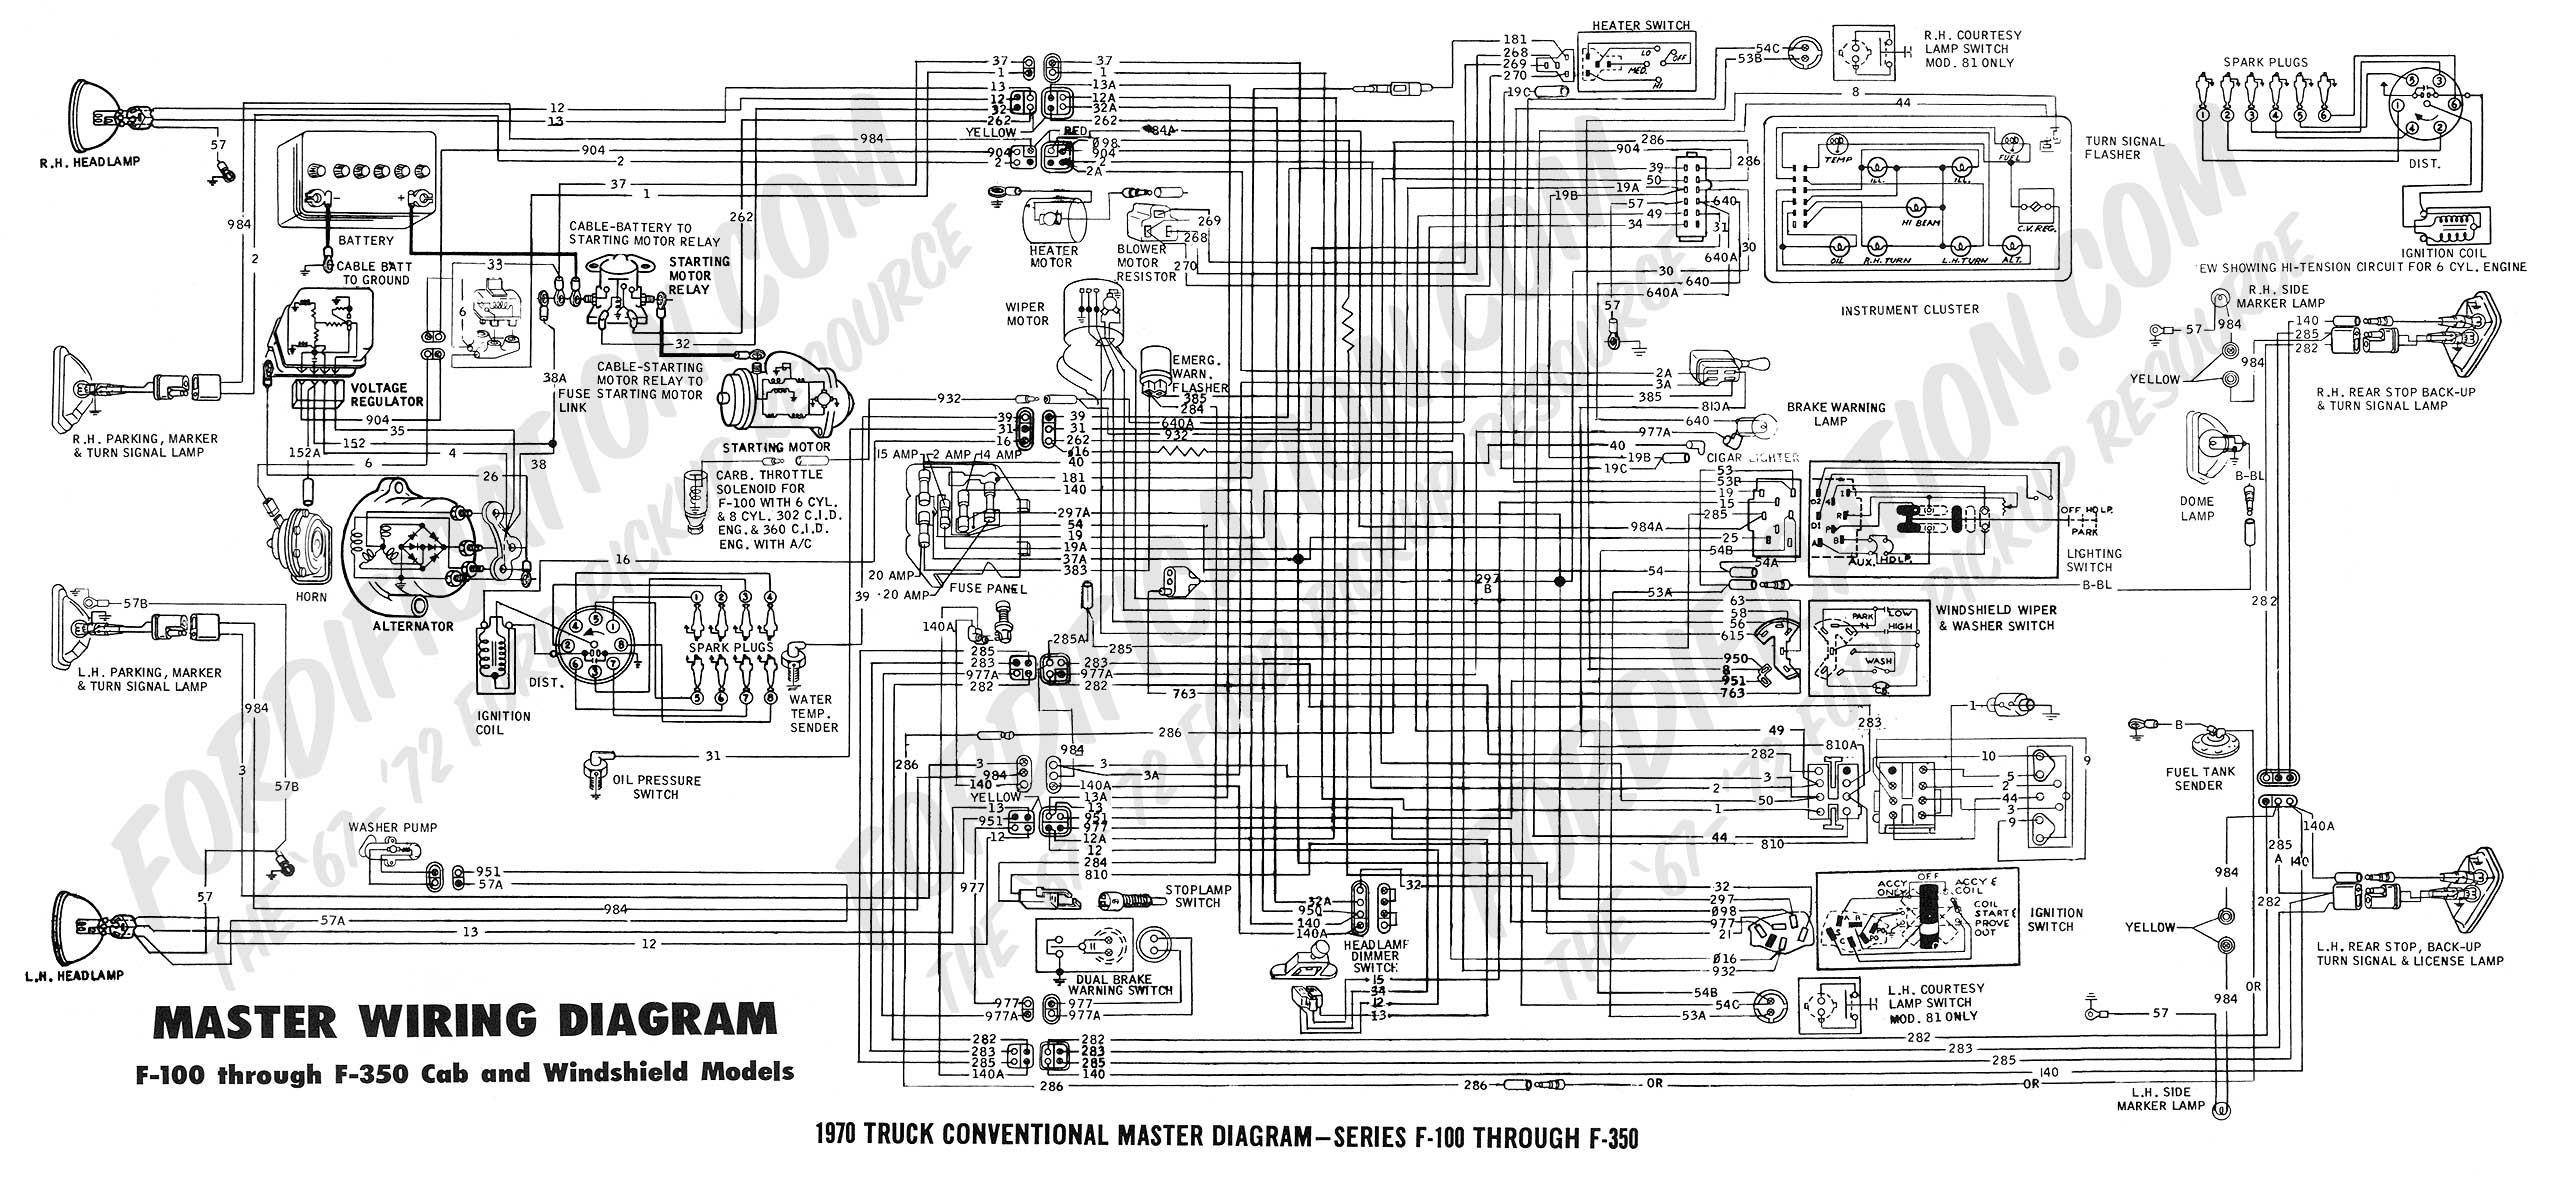 wiring diagram 70_master ford truck technical drawings and schematics section h wiring ford wiring schematics at honlapkeszites.co